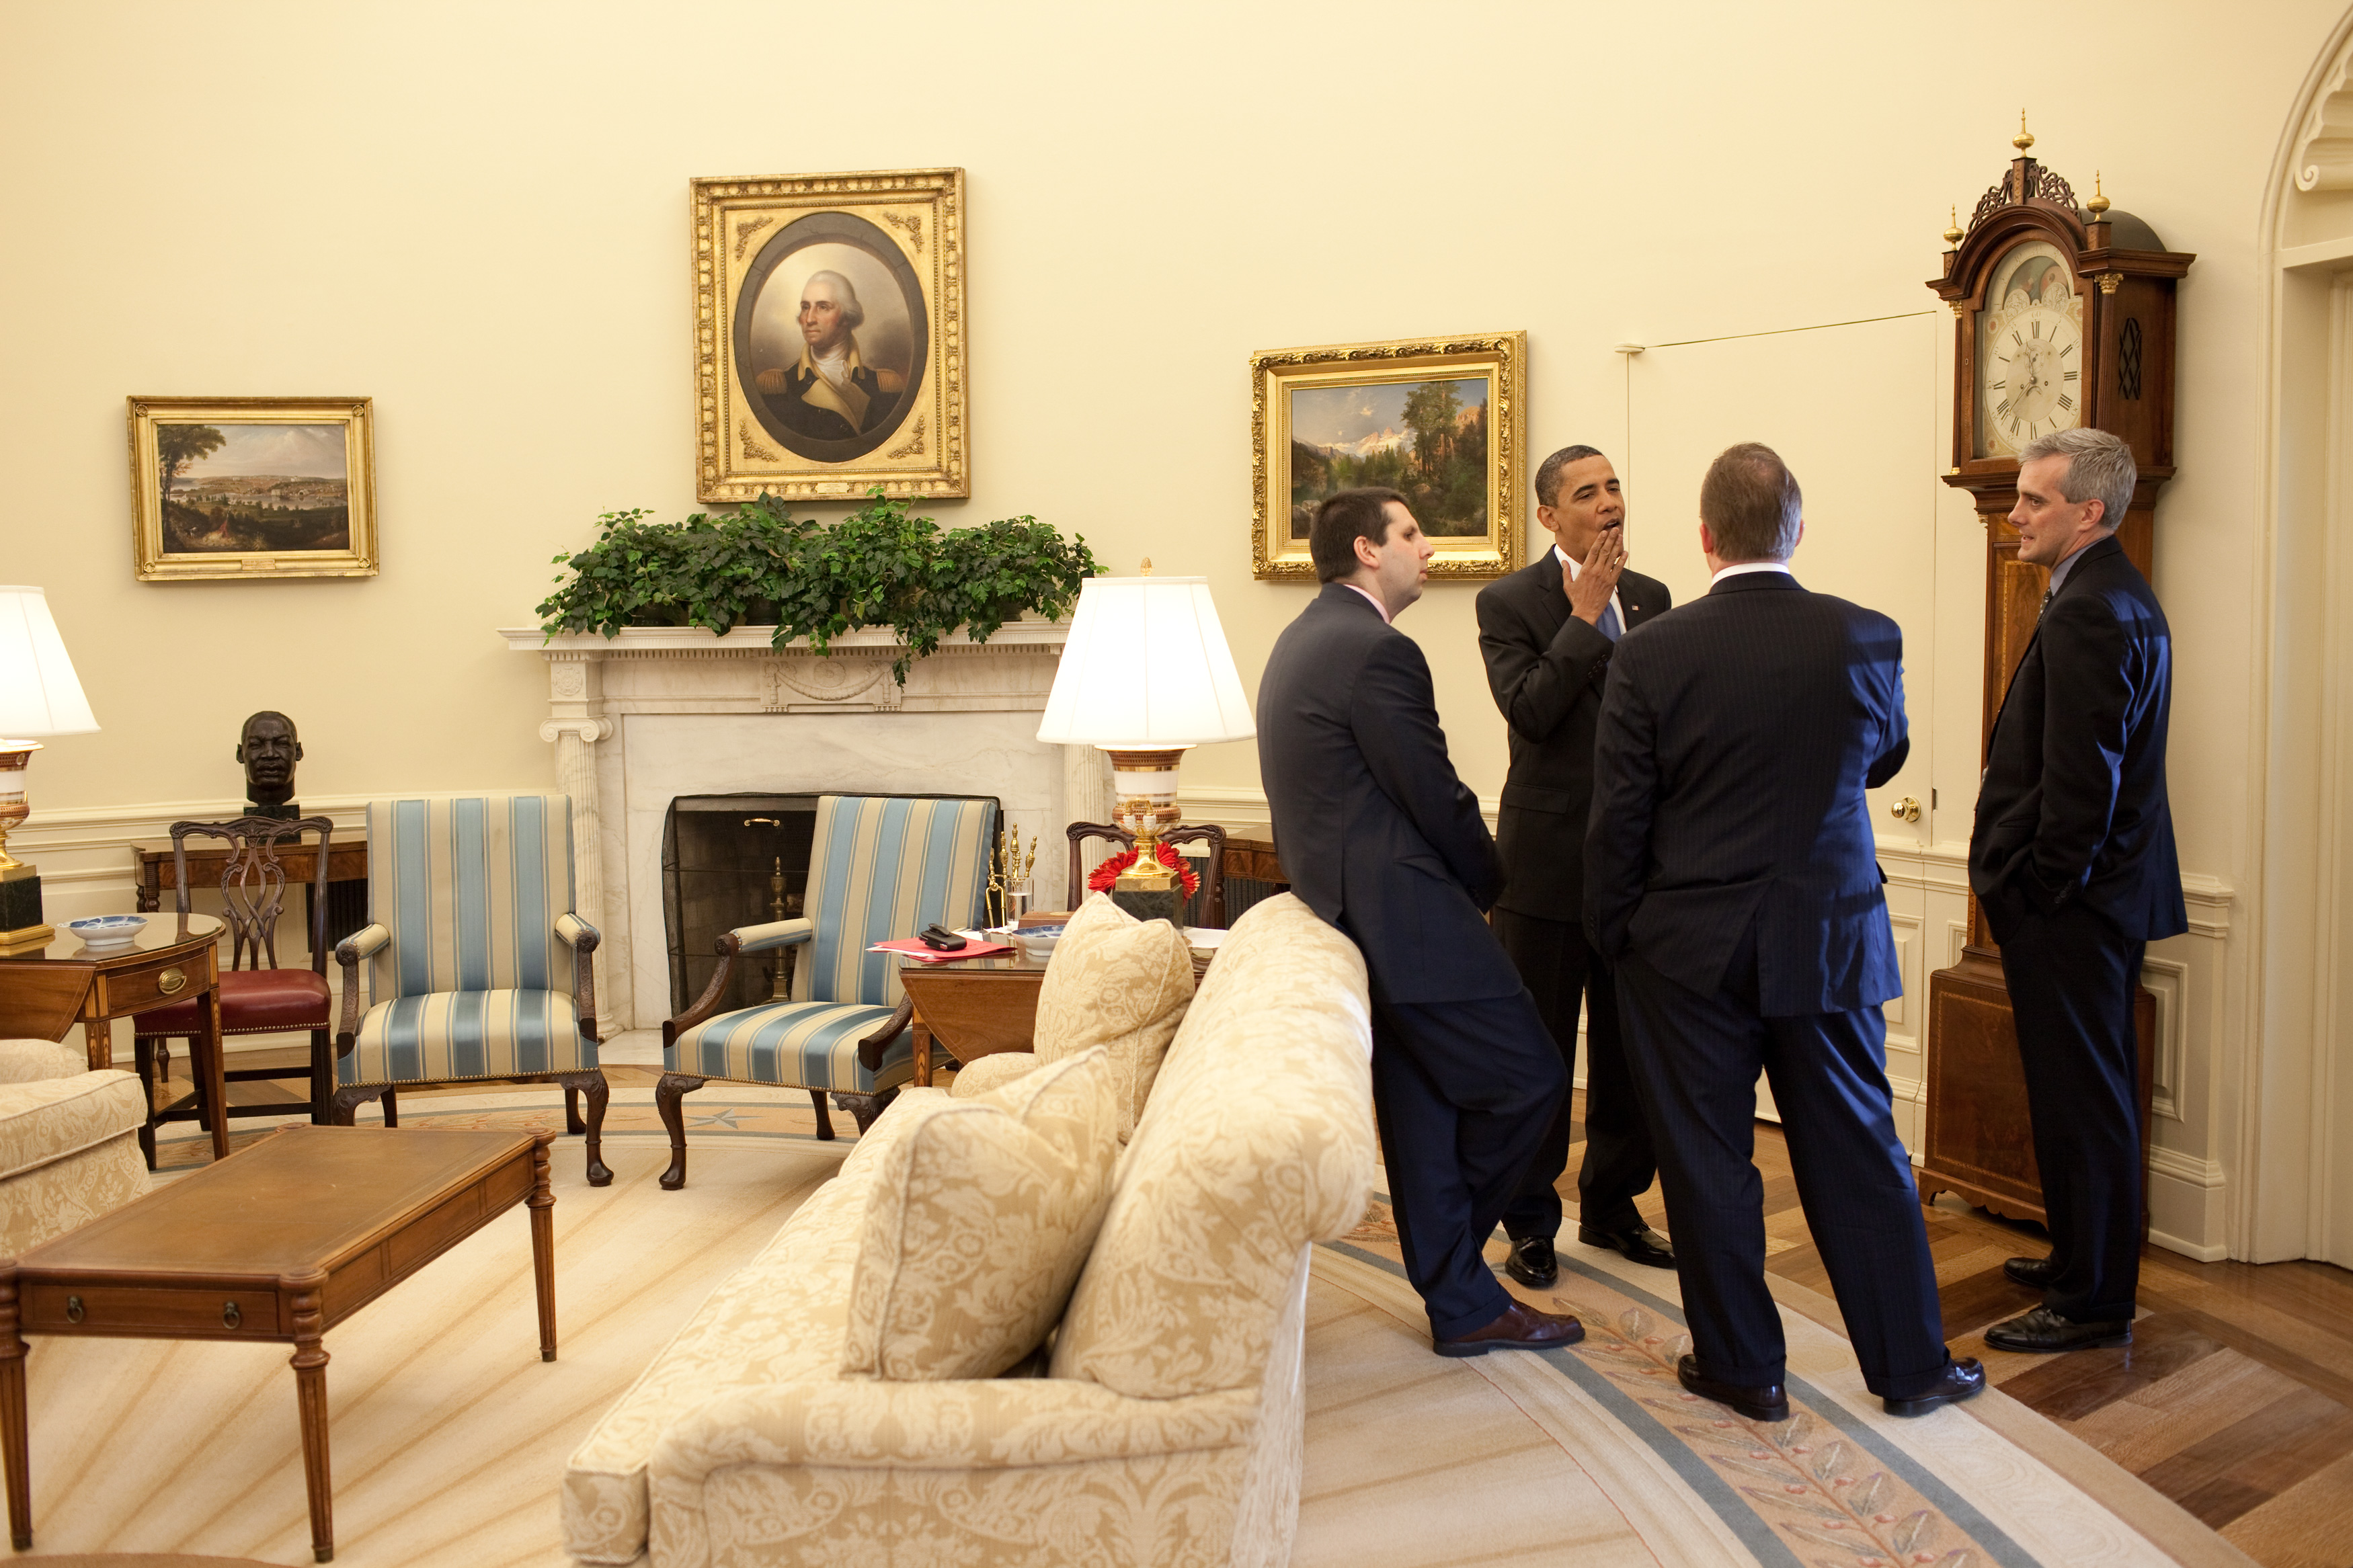 fileobama and his advisors in the oval officejpg fileobama oval officejpg